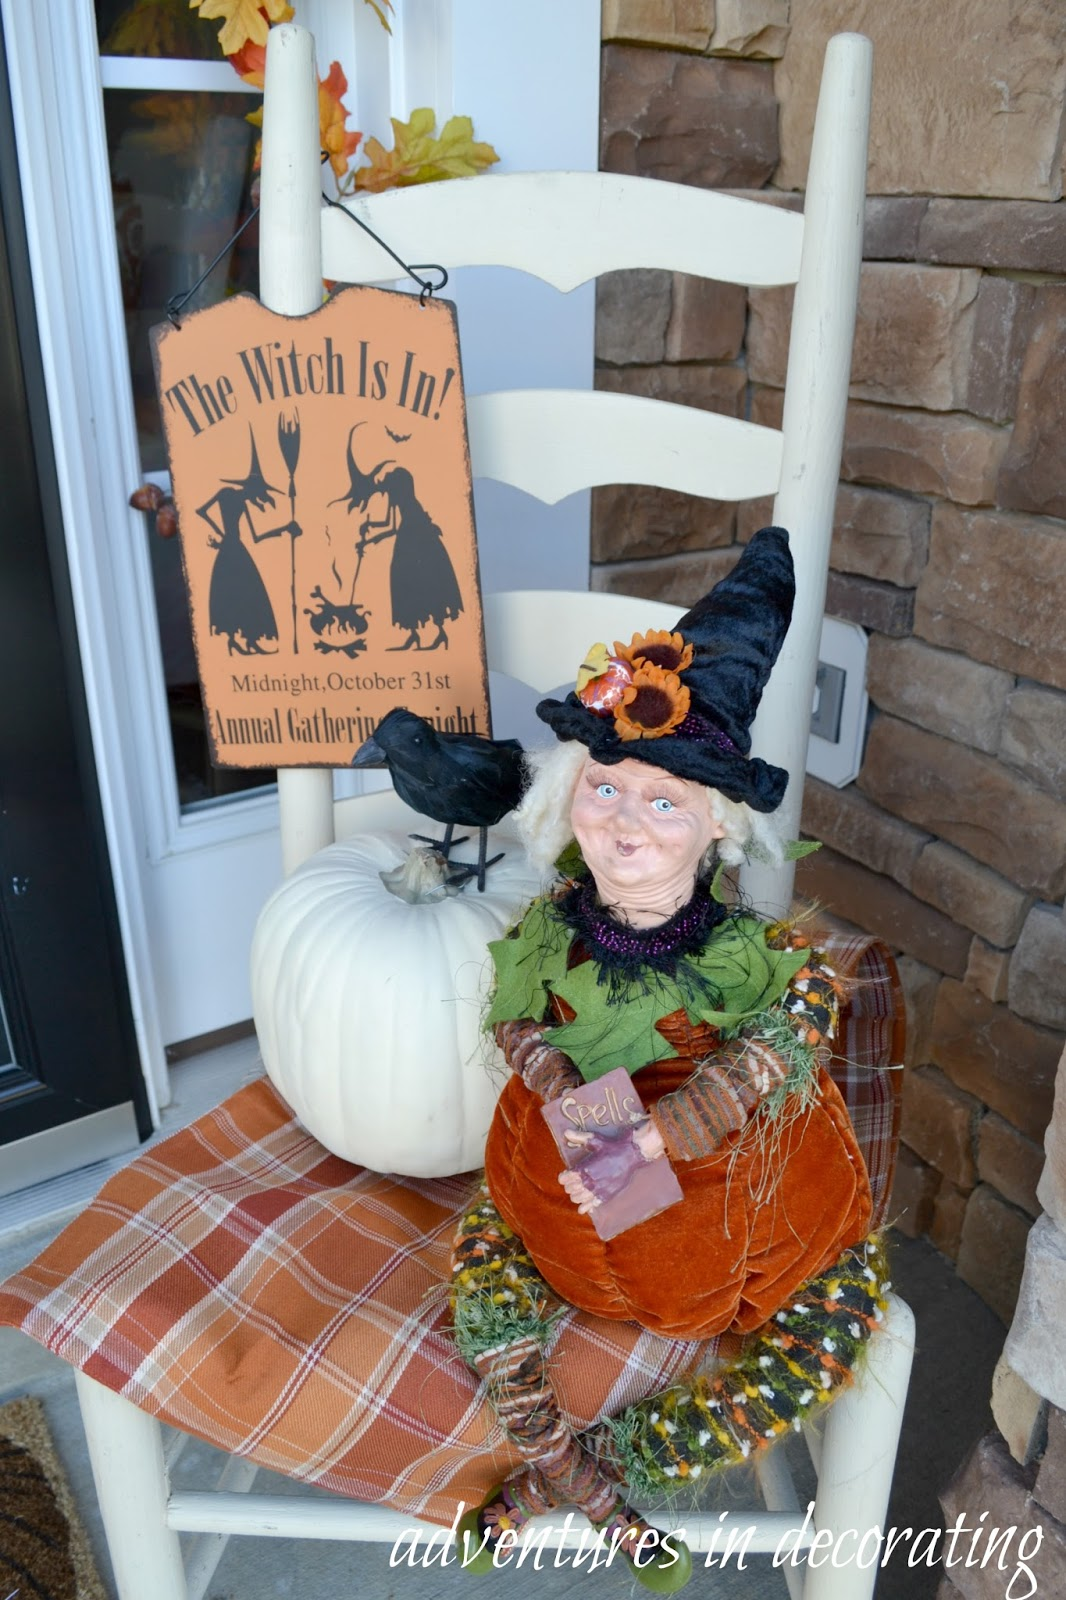 Adventures In Decorating Our 2015 Fall Kitchen: Adventures In Decorating: Our 2015 Fall Front Porch